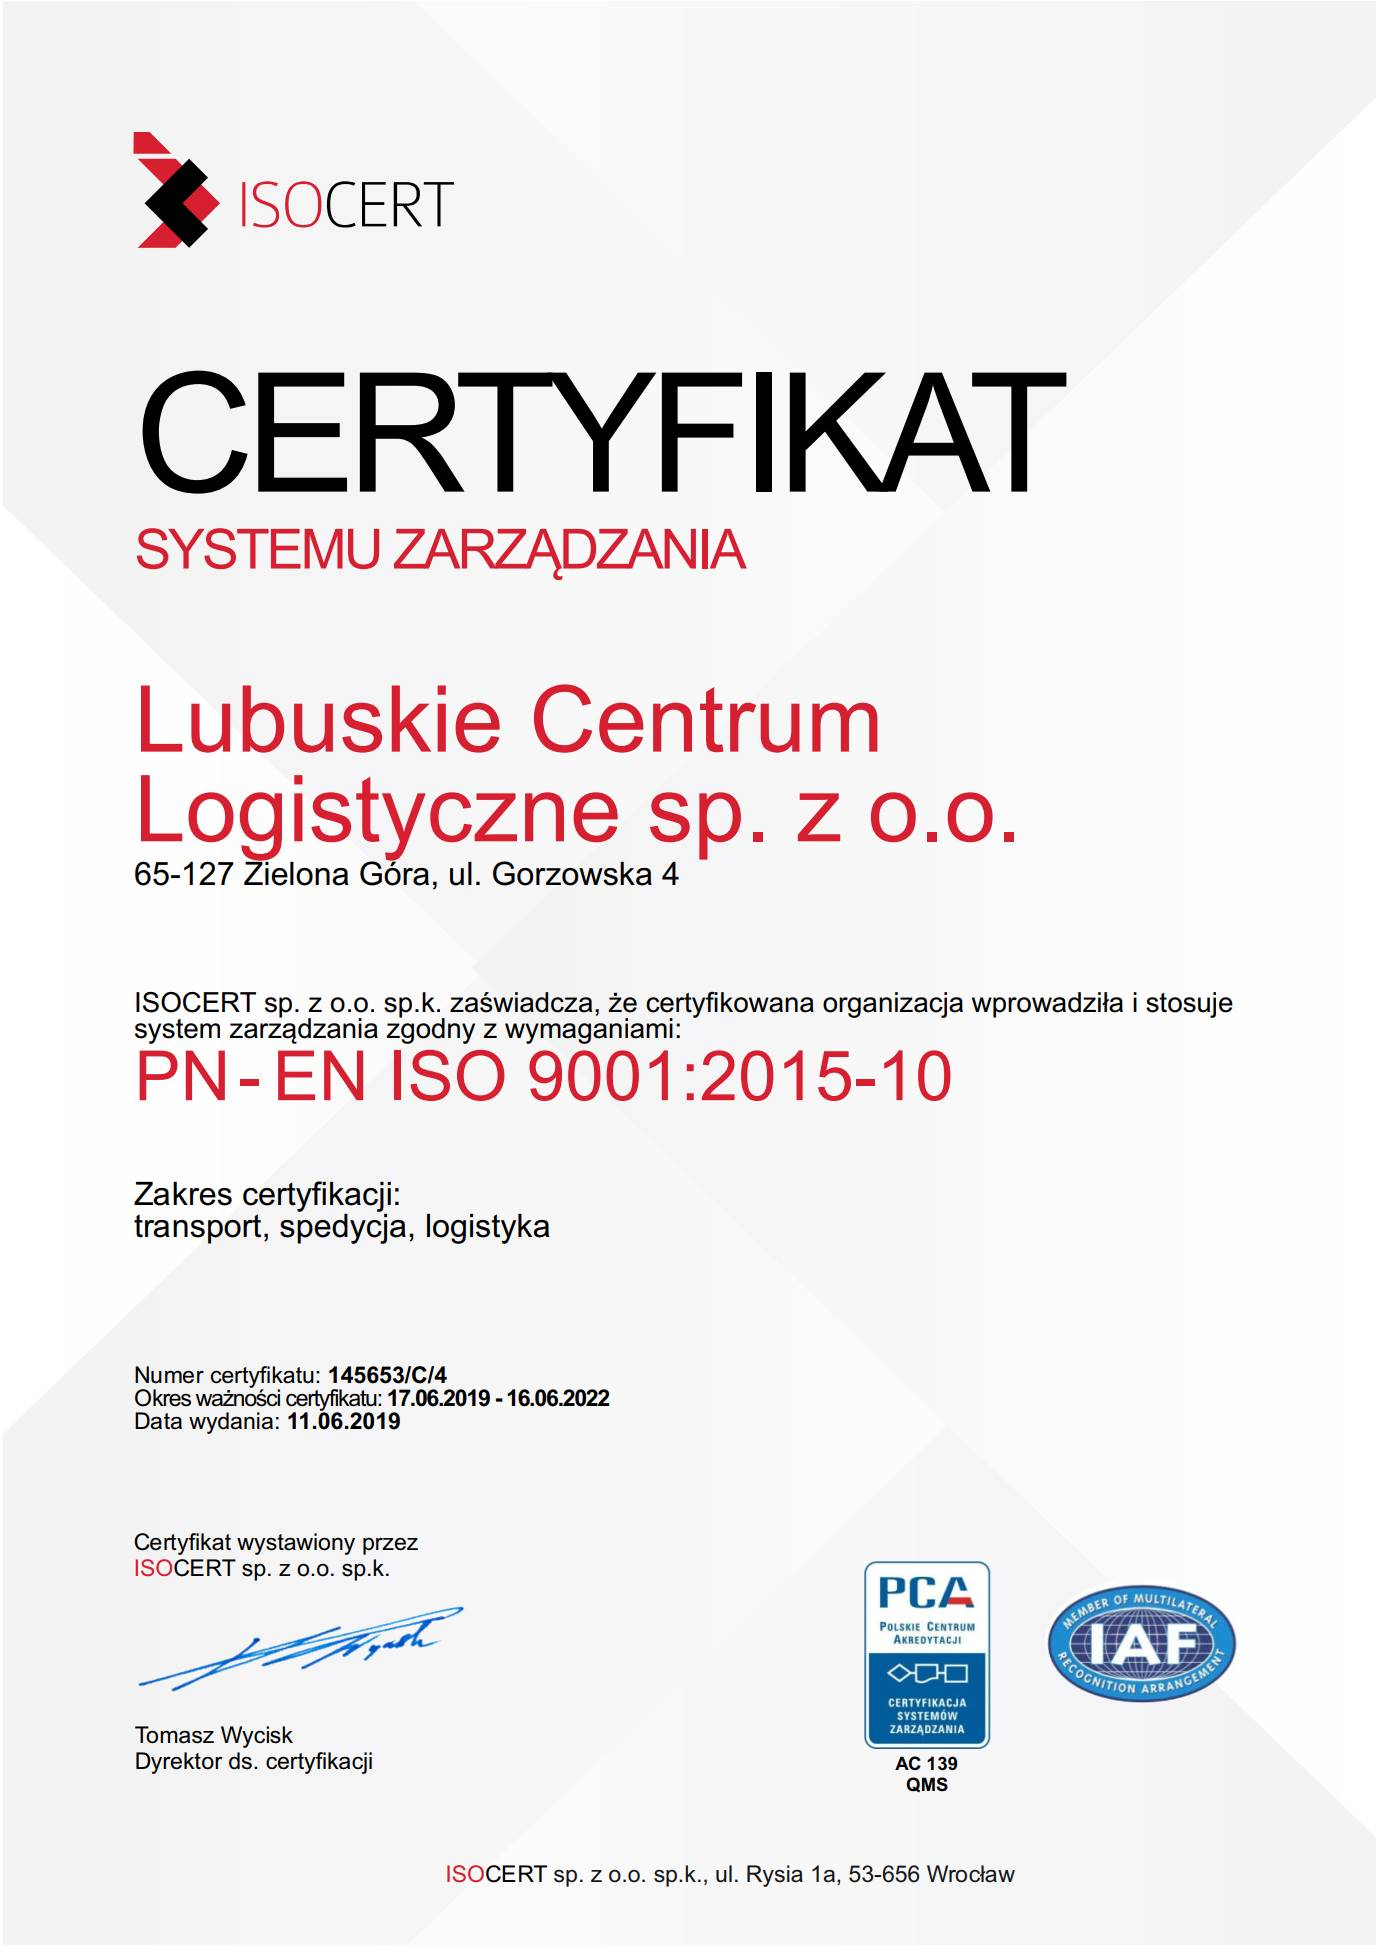 ISO CERTIFICATES AND LICENCES